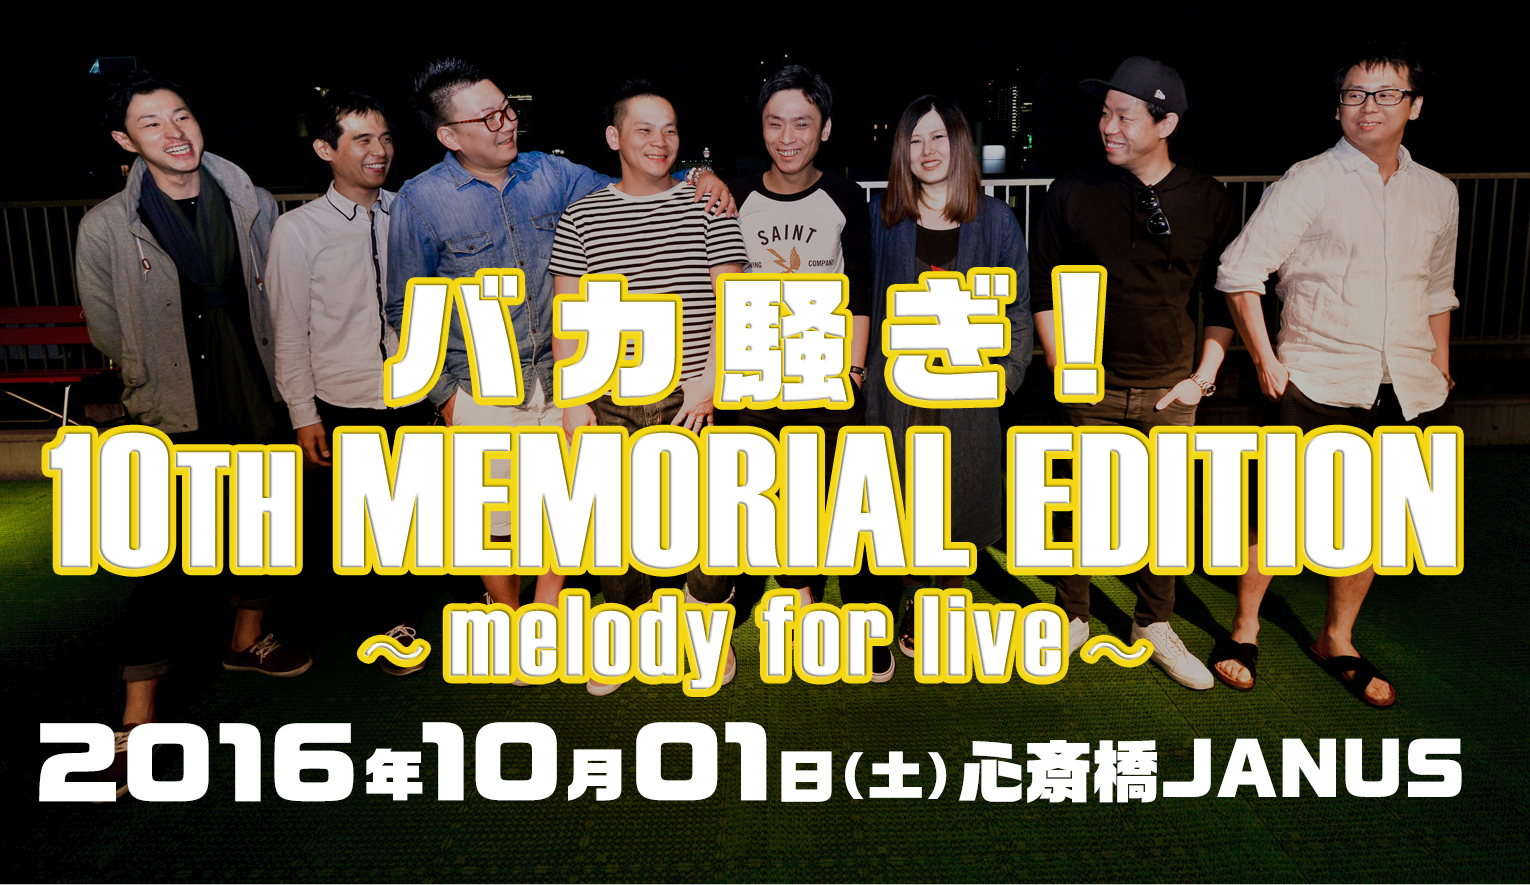 SQUEEZE!! バカ騒ぎ!10TH MEMORIAL EDITION ~ melody for live ~